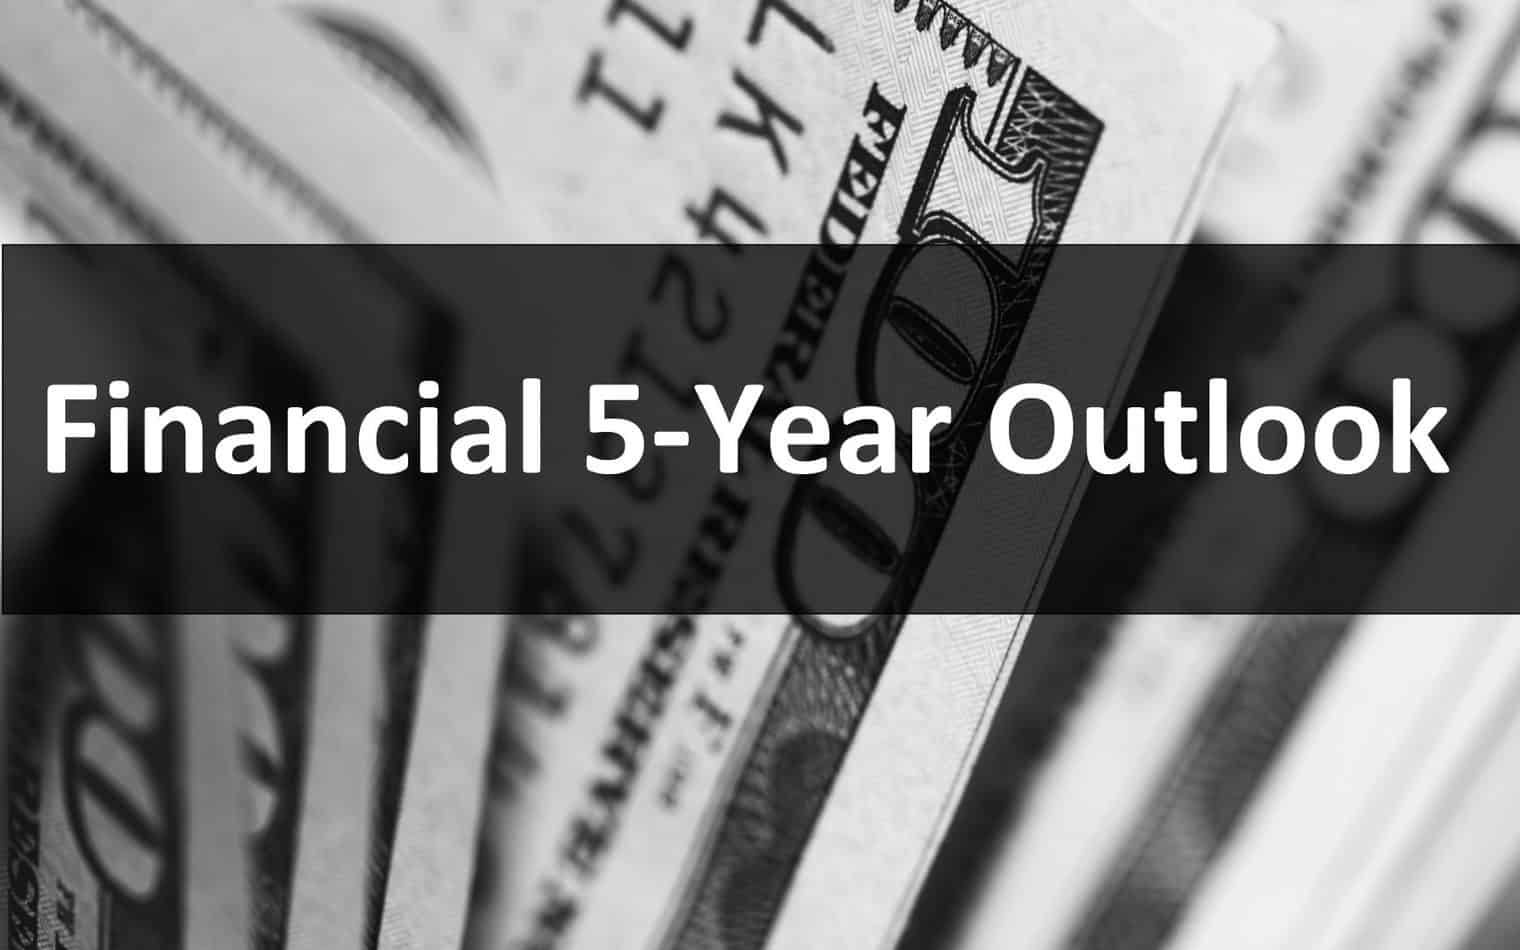 Financial 5-year outlook